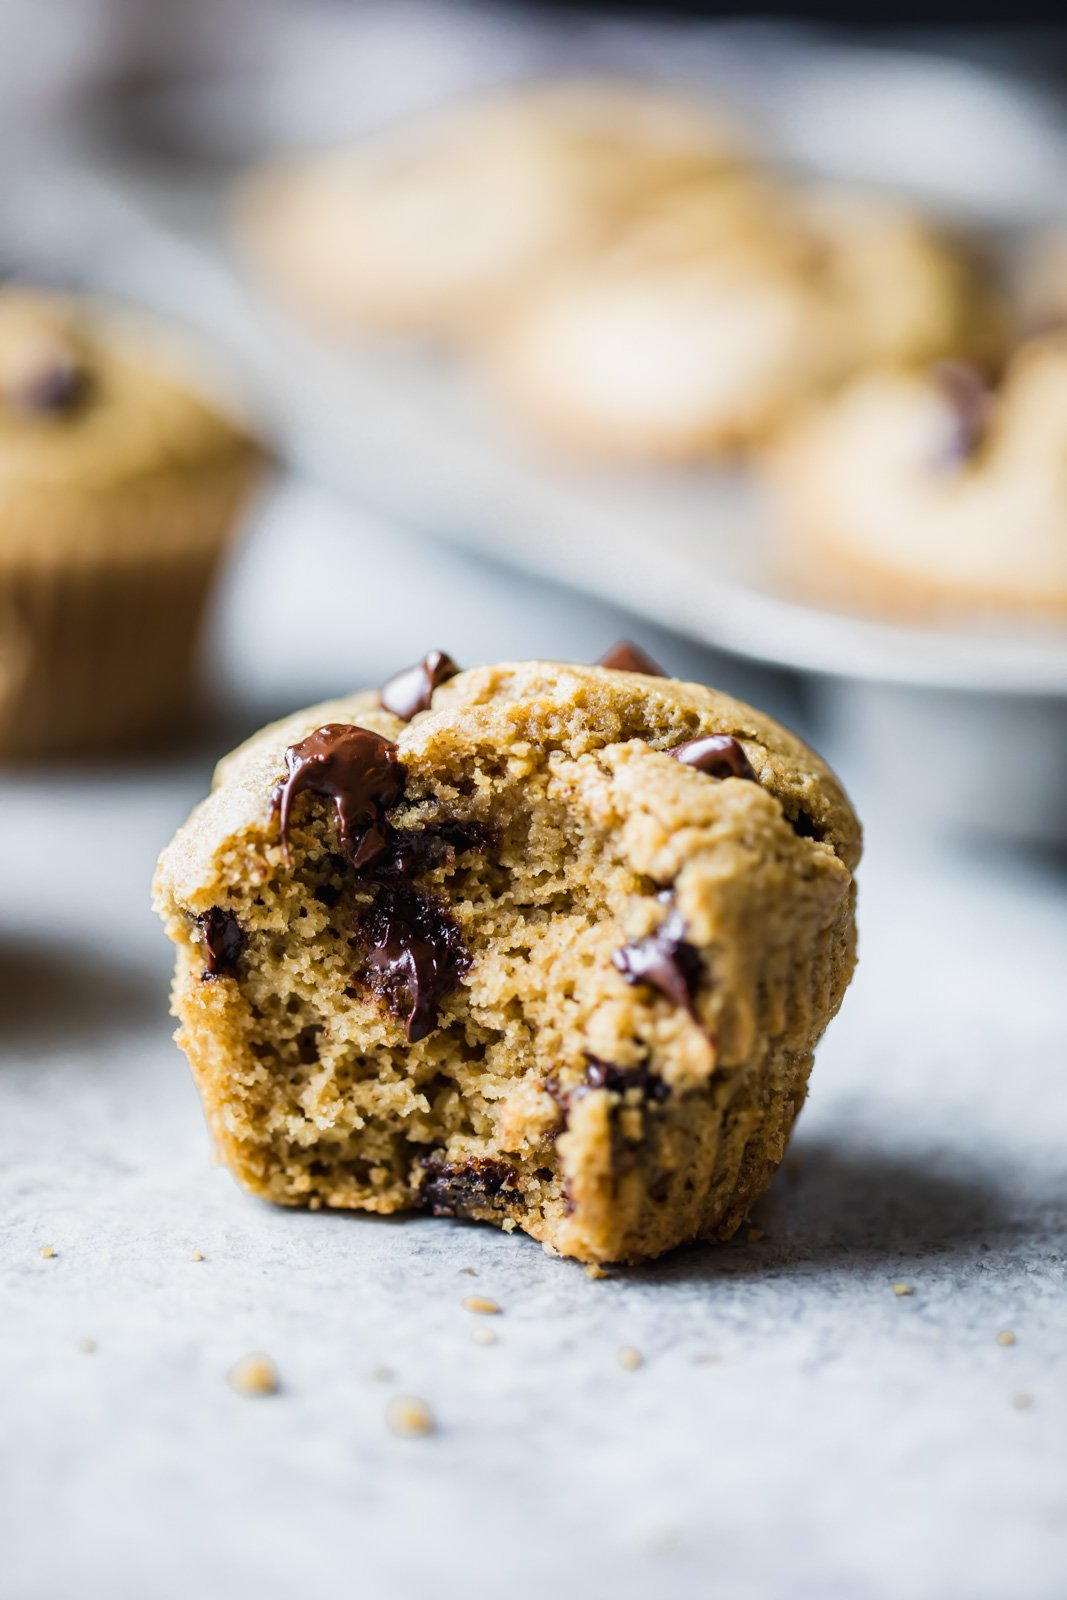 chocolate chip muffin with a bite out of it